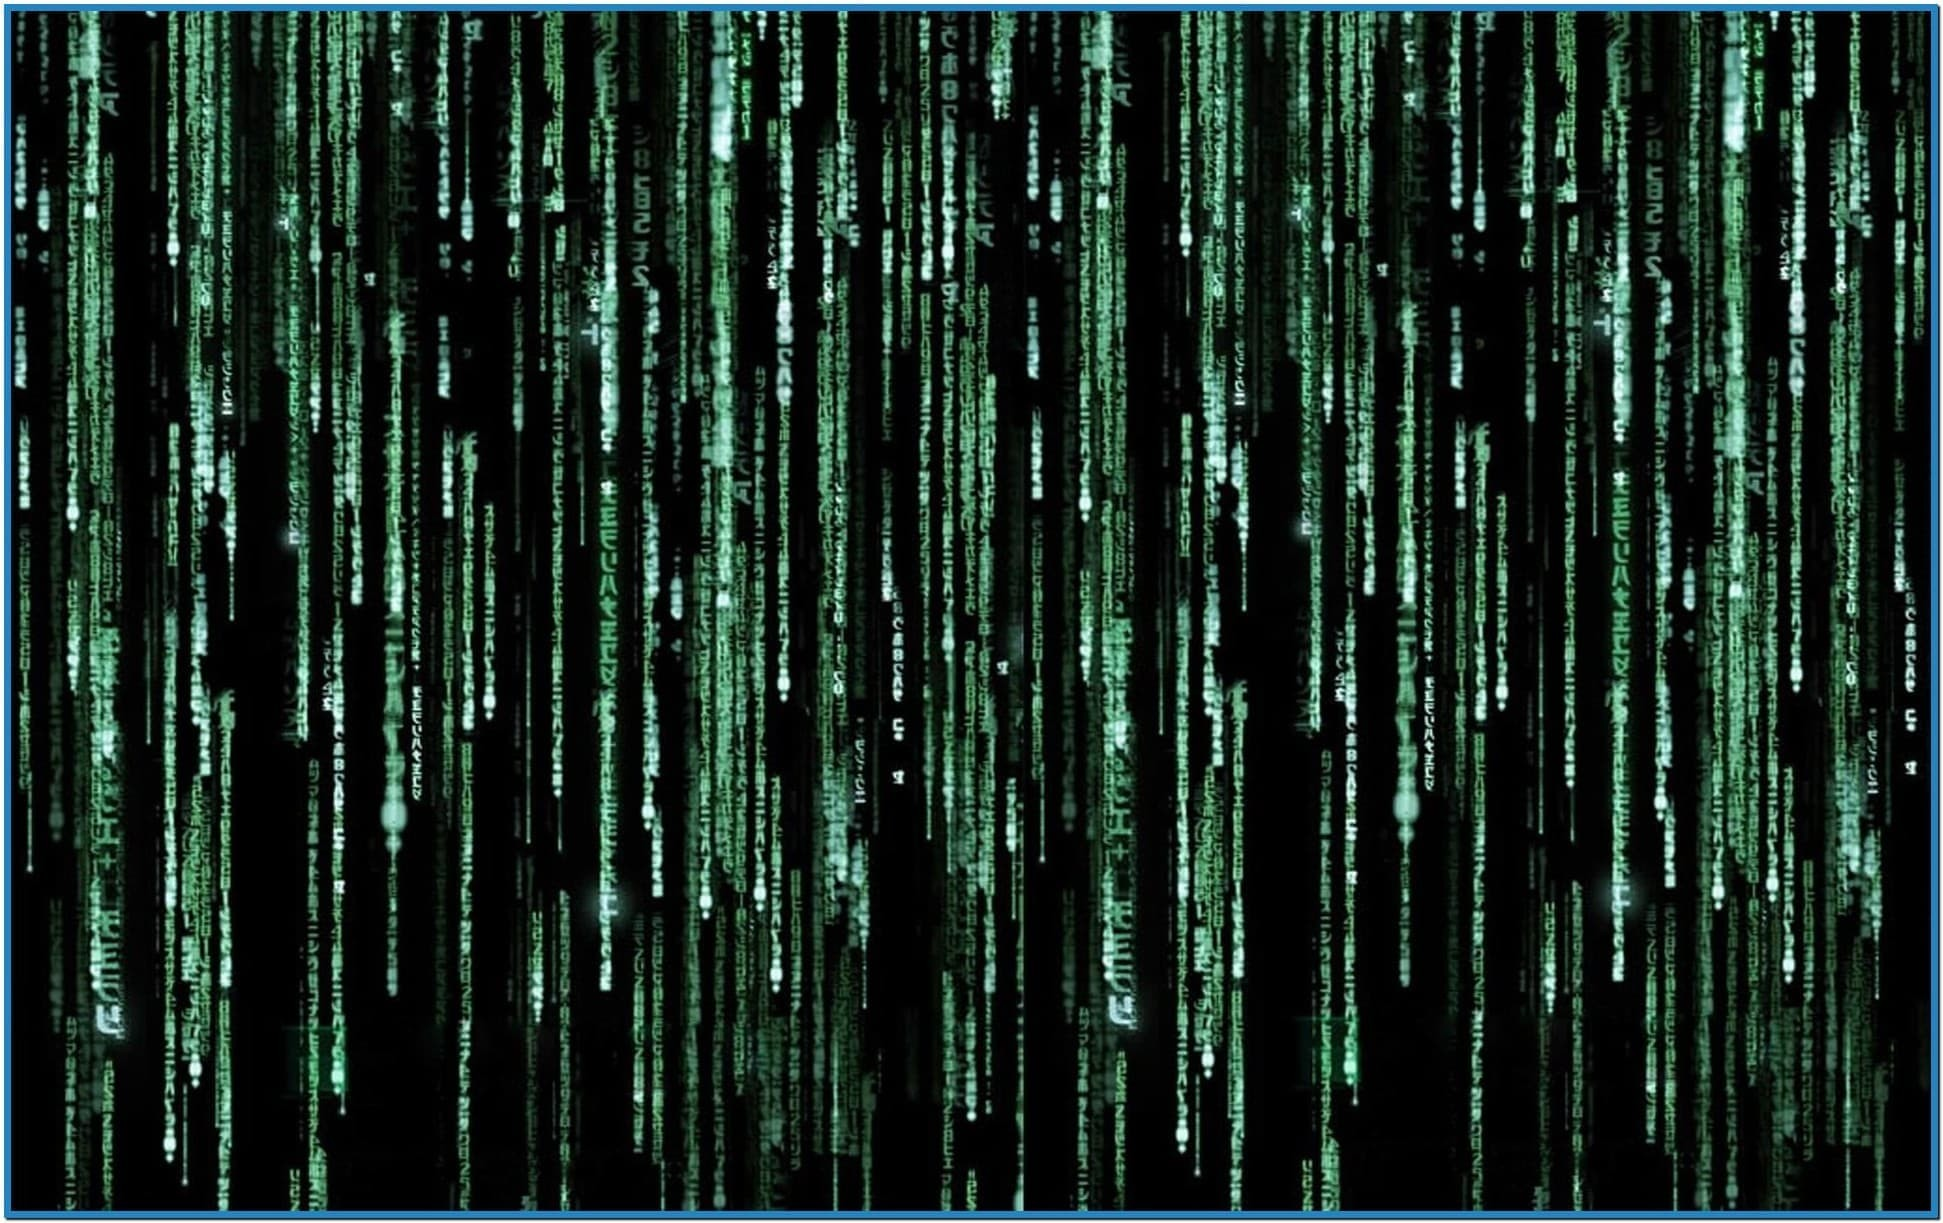 animated matrix wallpaper windows 10 57 images